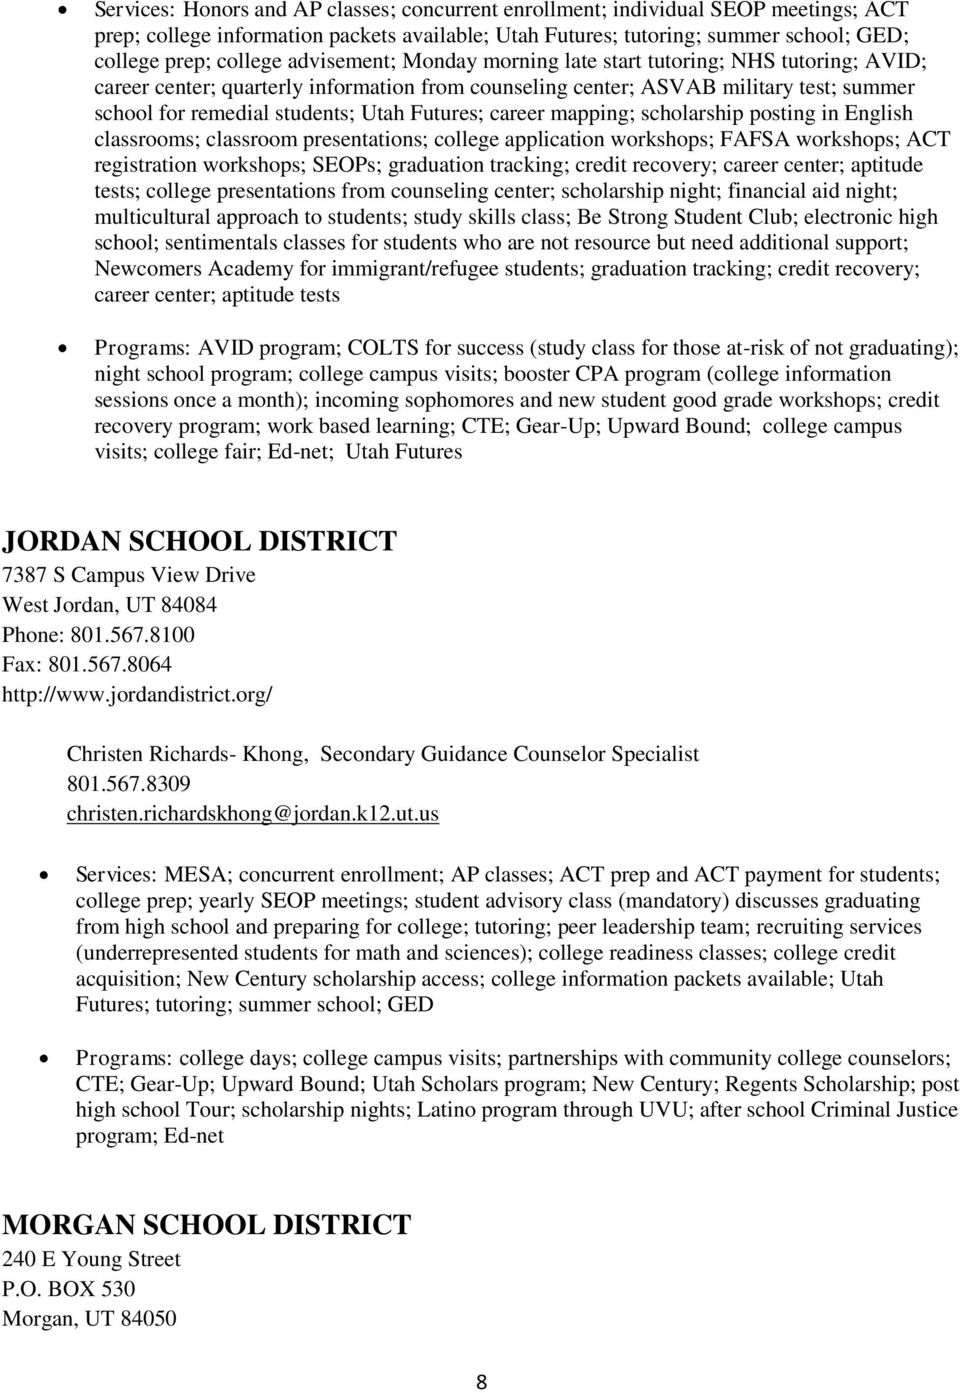 utah school district resources high school to college services and